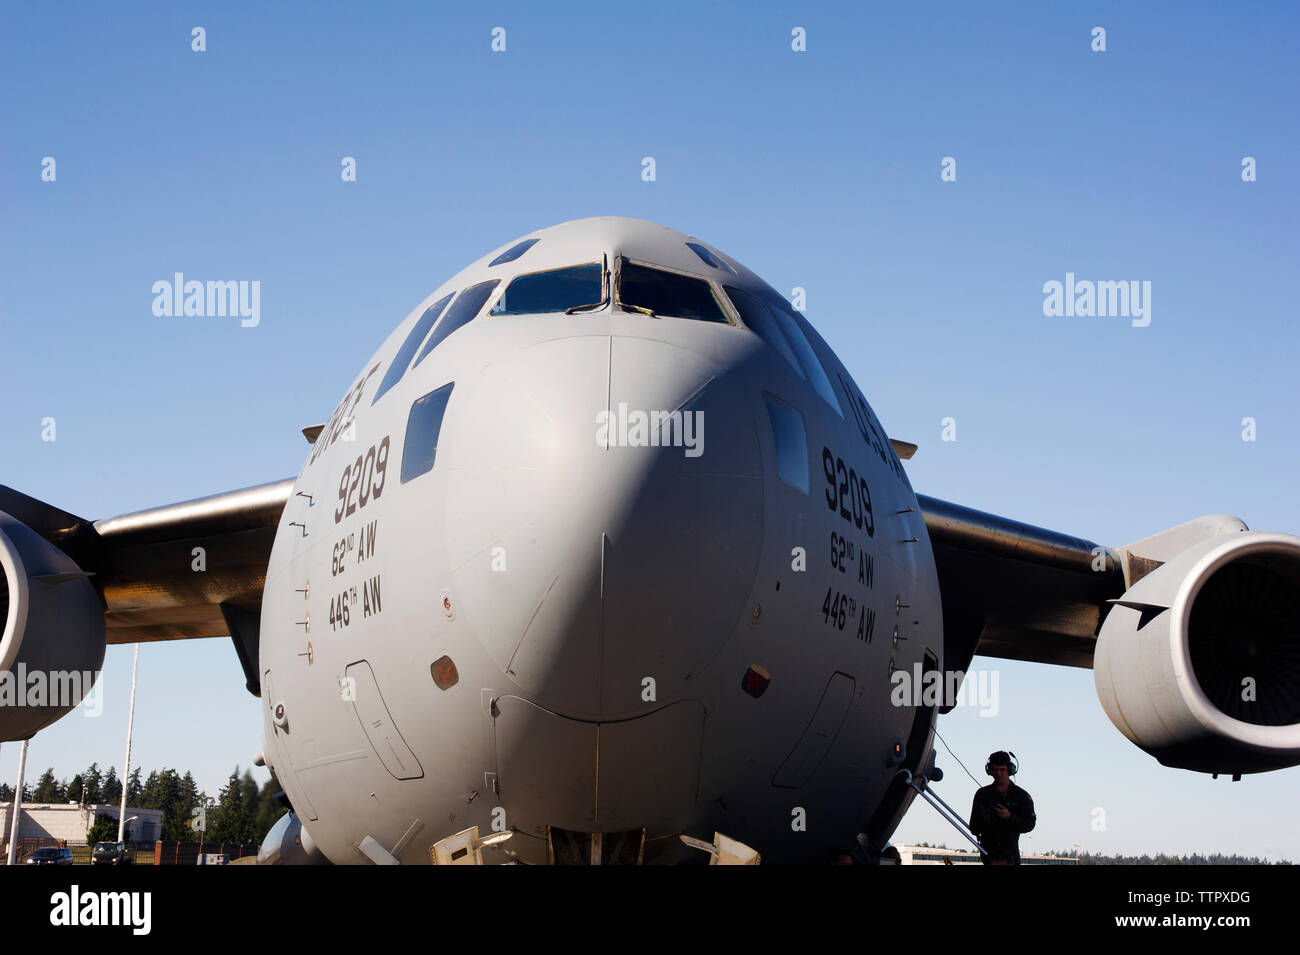 Military airplane on runway against clear blue sky - Stock Image